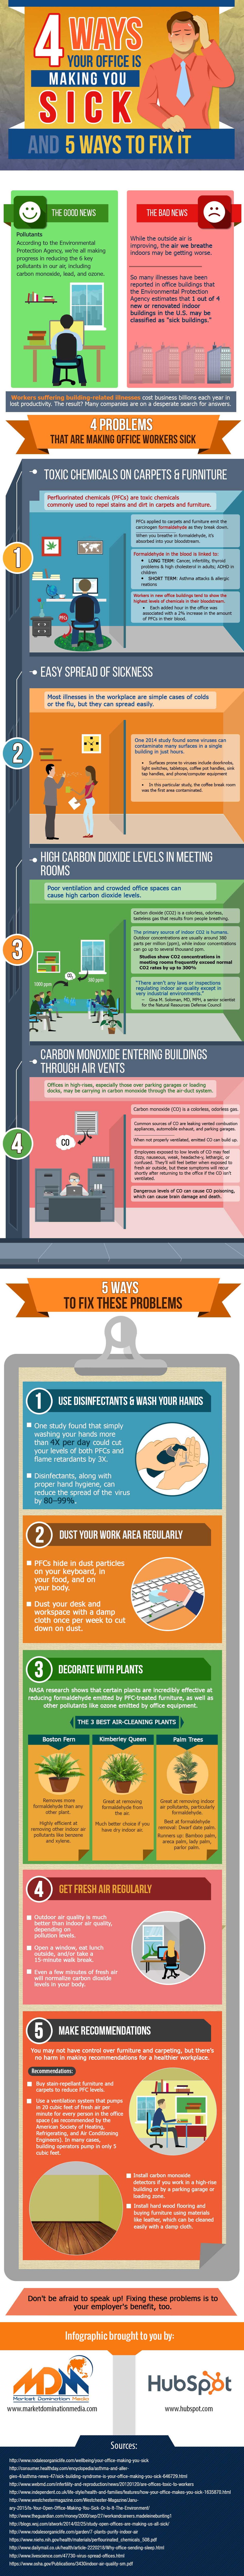 4_Ways_Your_Office_is_Making_You_Sick_And_5_Ways_to_Fix_It.jpg